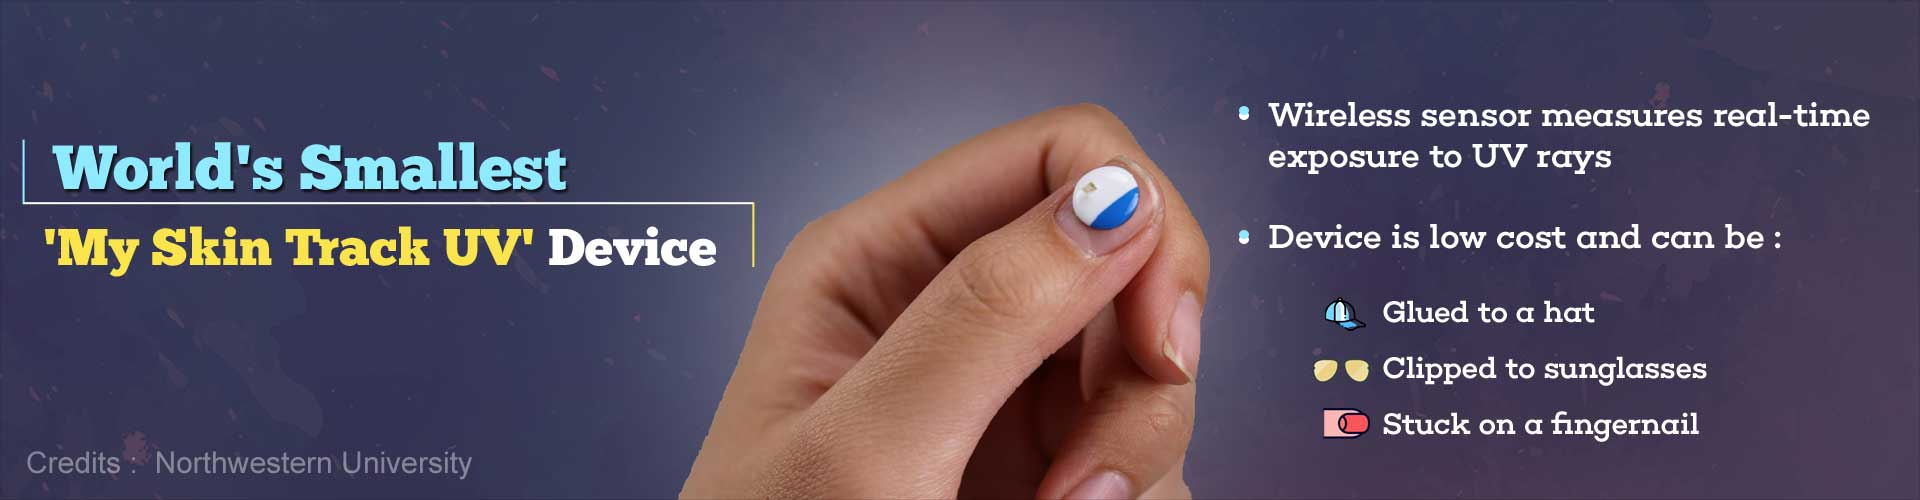 World's Smallest Wireless Wearable Sensor can Monitor Exposure to Harmful UV Rays